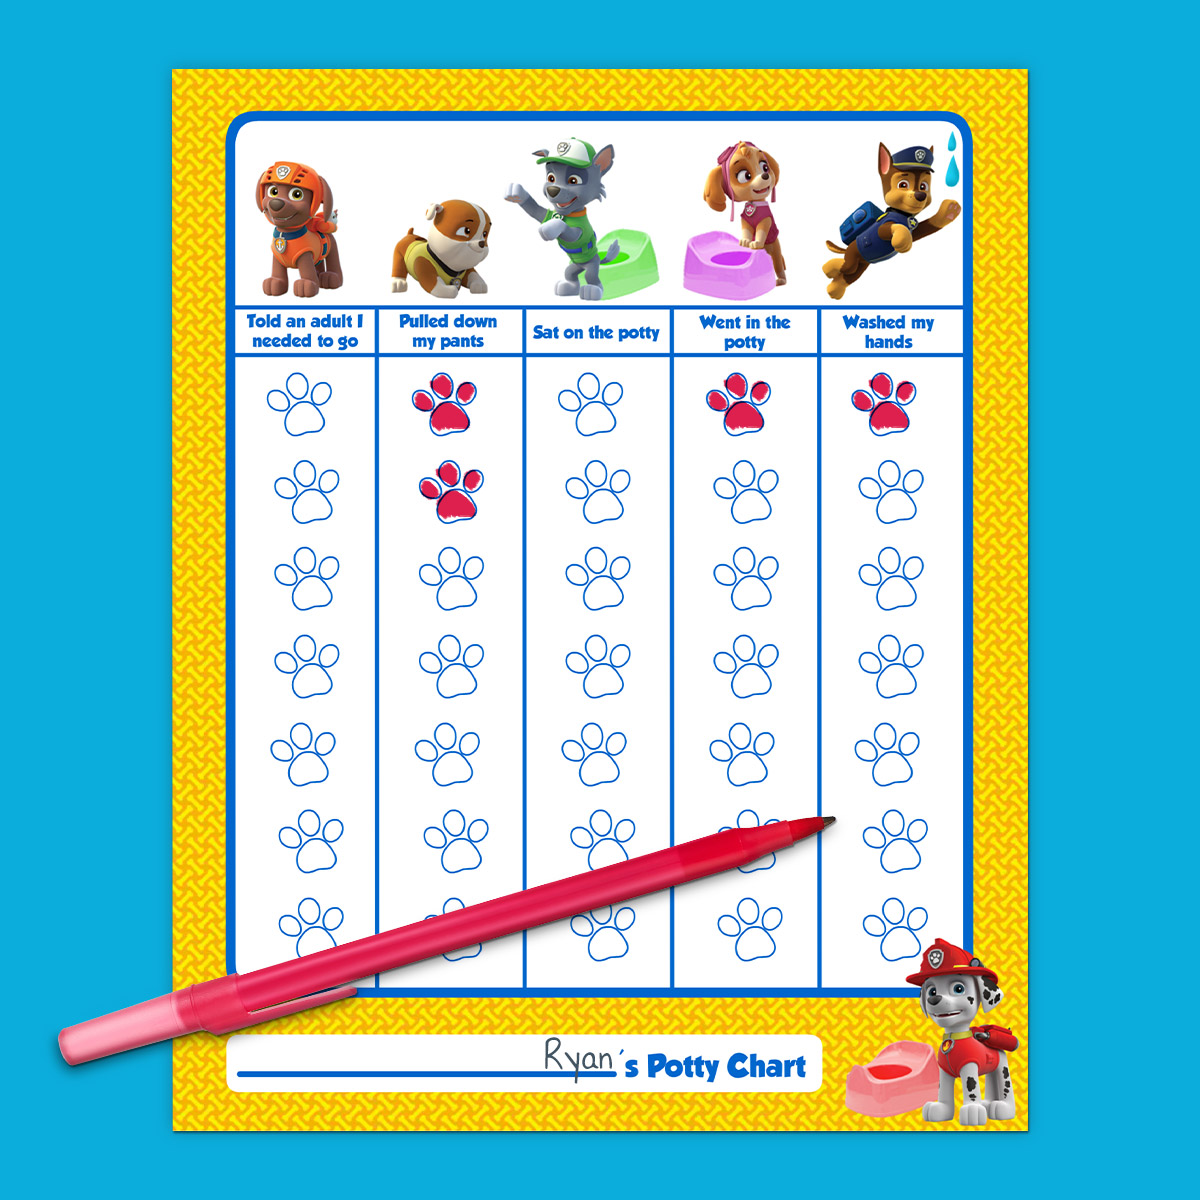 photograph about Free Printable Potty Training Charts identify PAW Patrol Potty Performing exercises Chart Nickelodeon Dad and mom